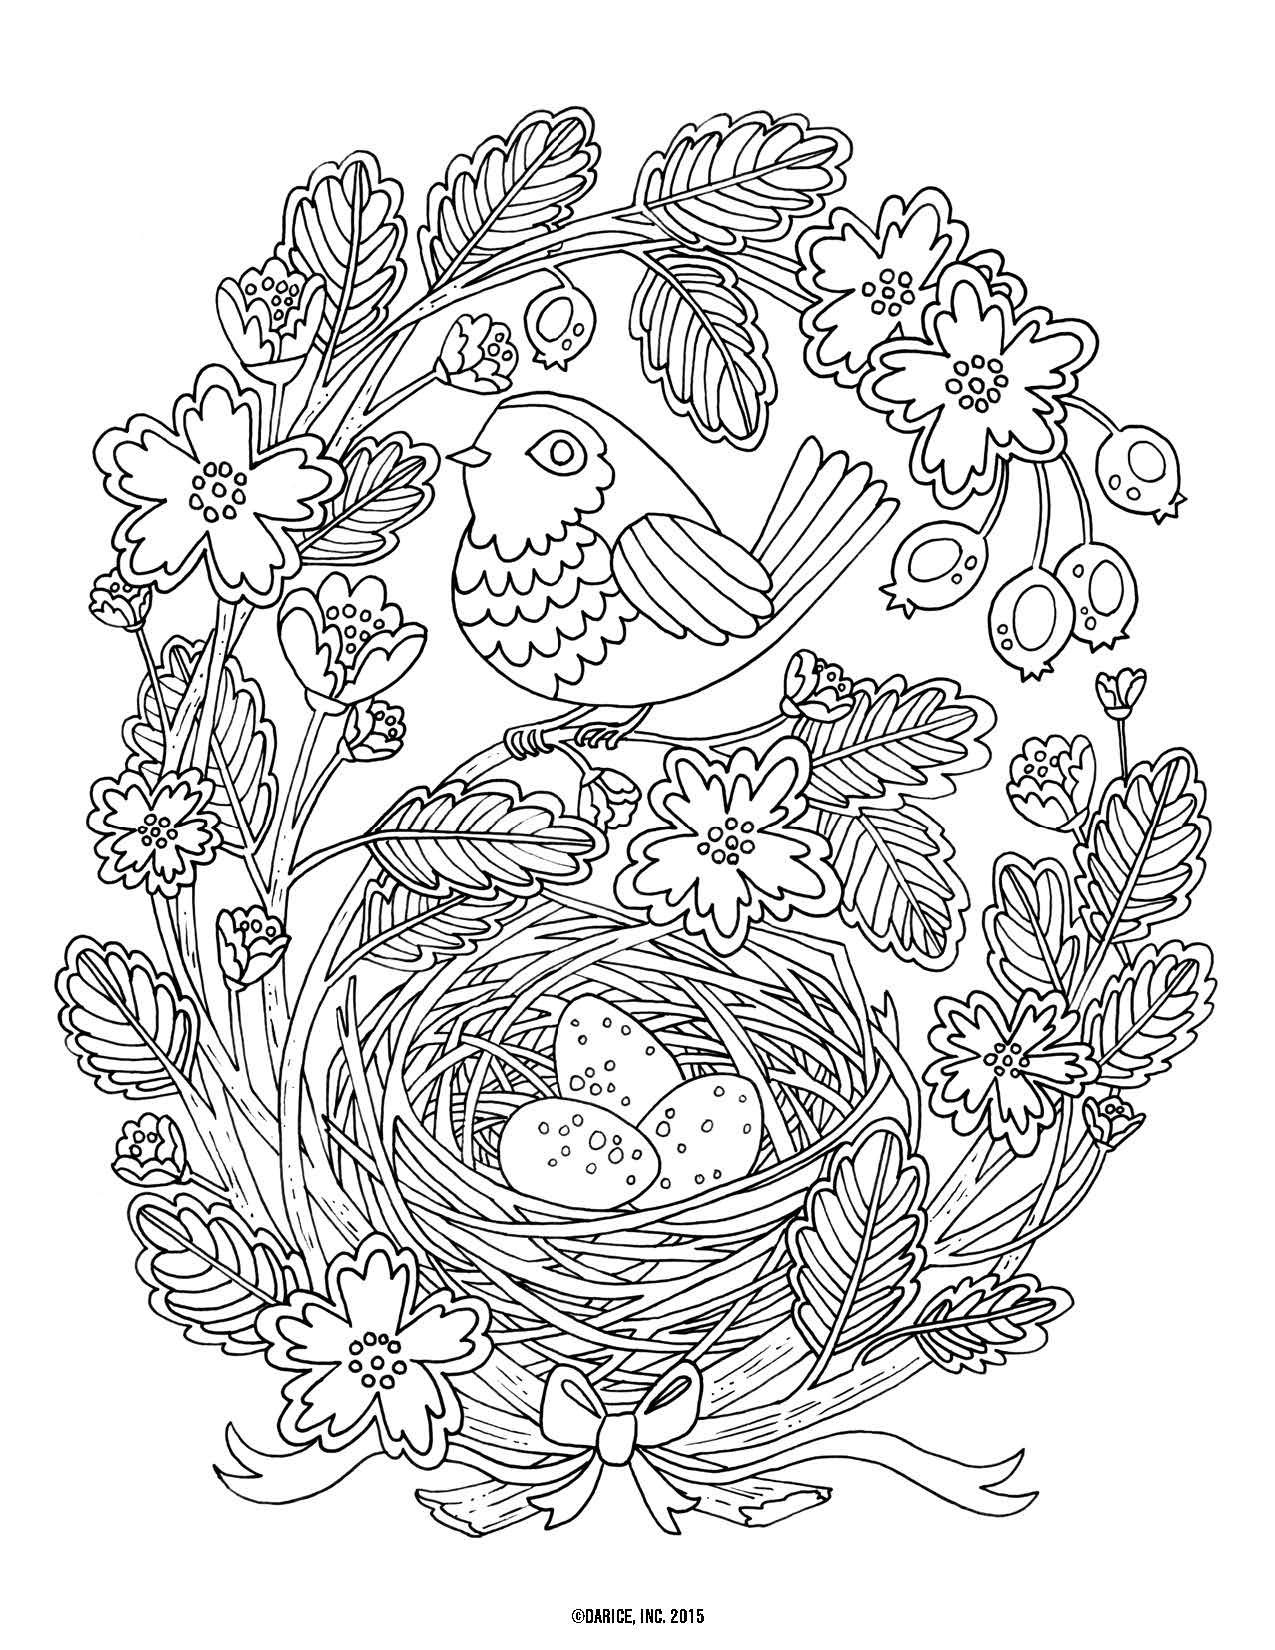 9 Free Printable Adult Coloring Pages | Pat Catan's Blog - Free Printable Flower Coloring Pages For Adults